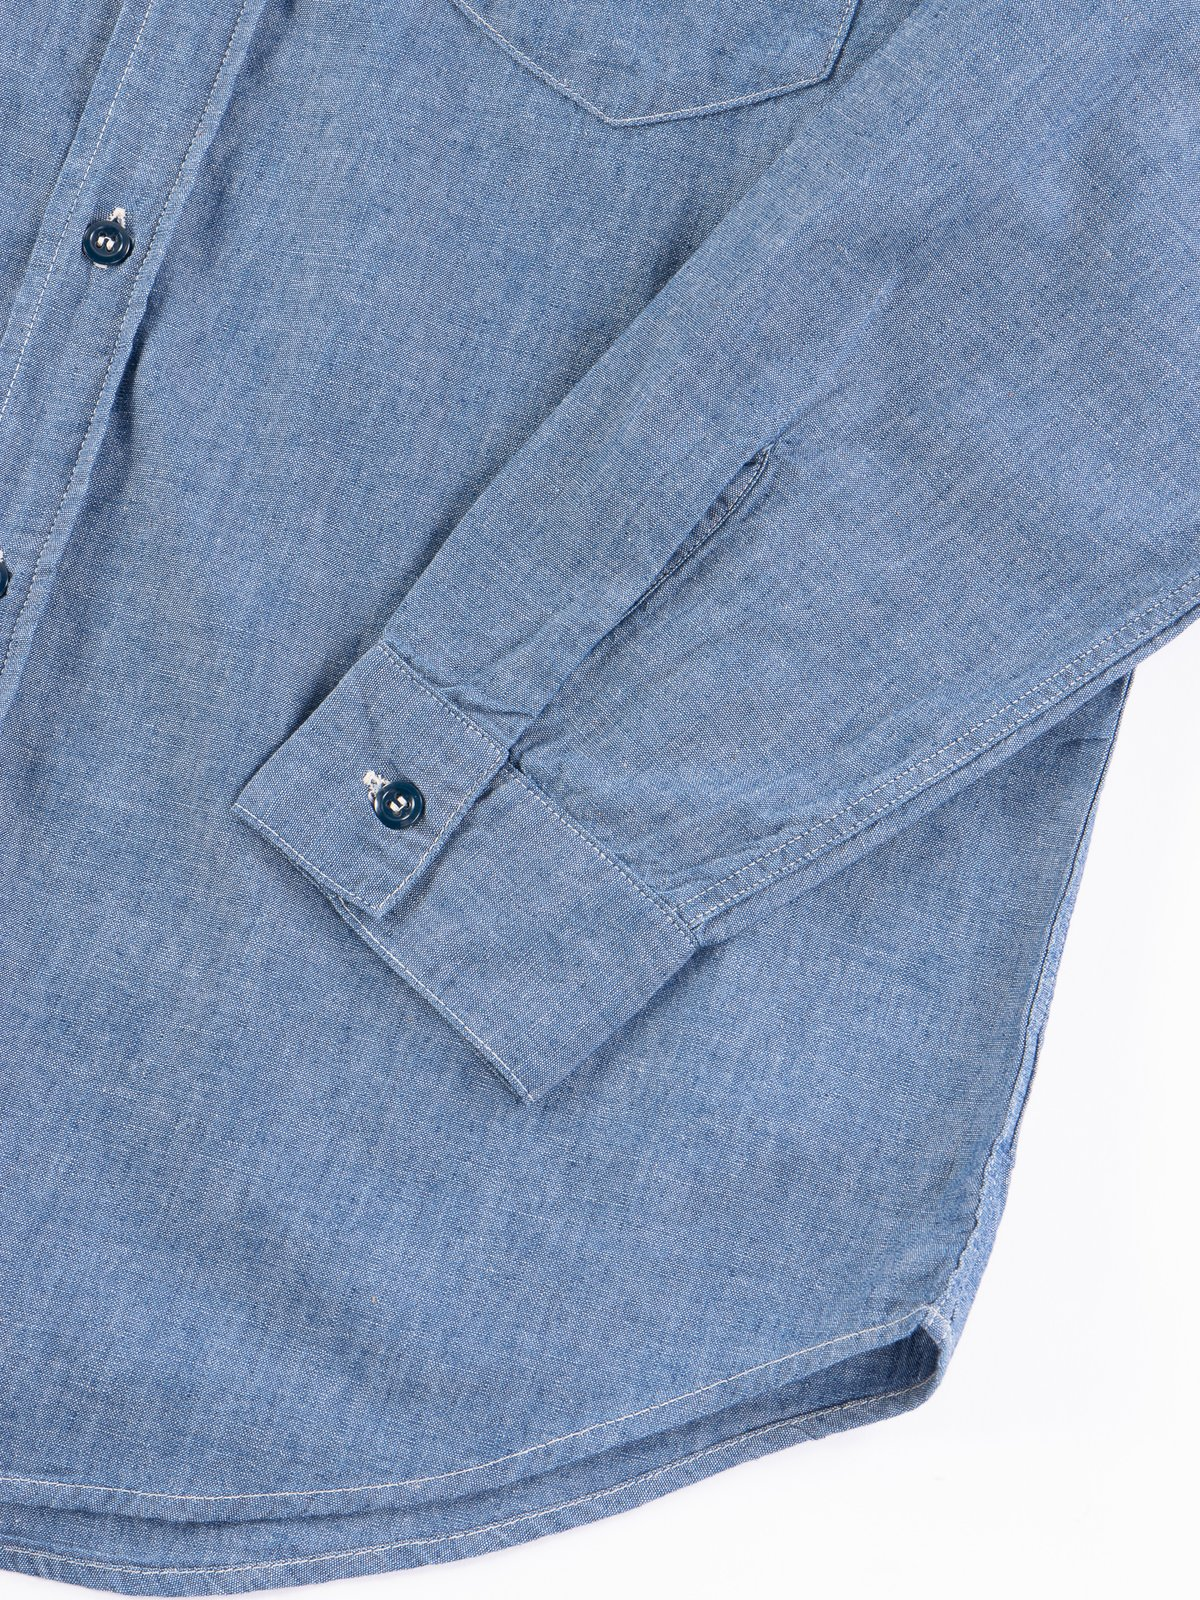 Blue Chambray Vintage Fit Work Shirt - Image 4